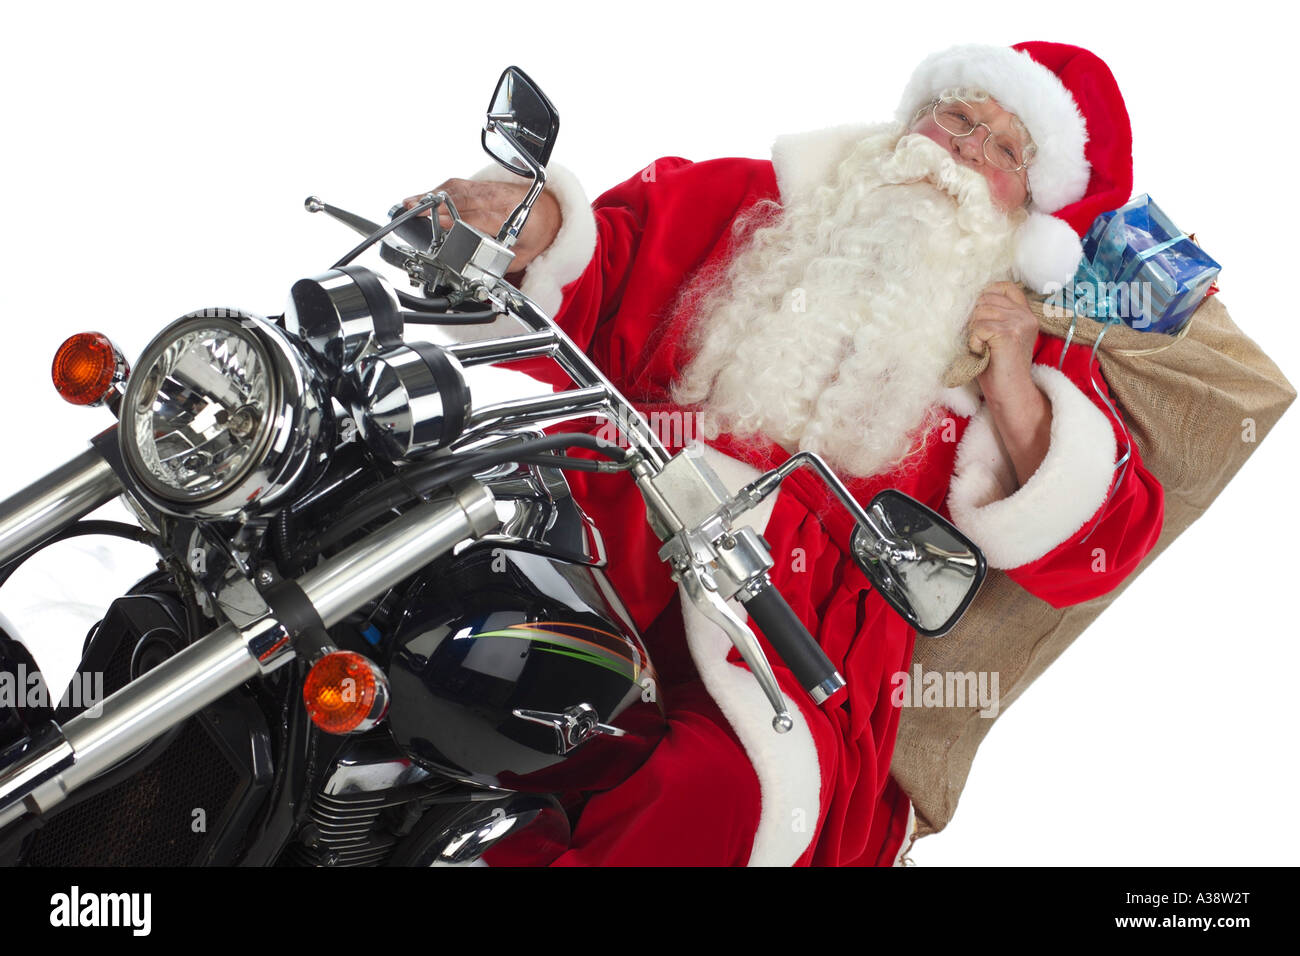 nikolaus auf einem motorrad santa claus riding motorbike. Black Bedroom Furniture Sets. Home Design Ideas